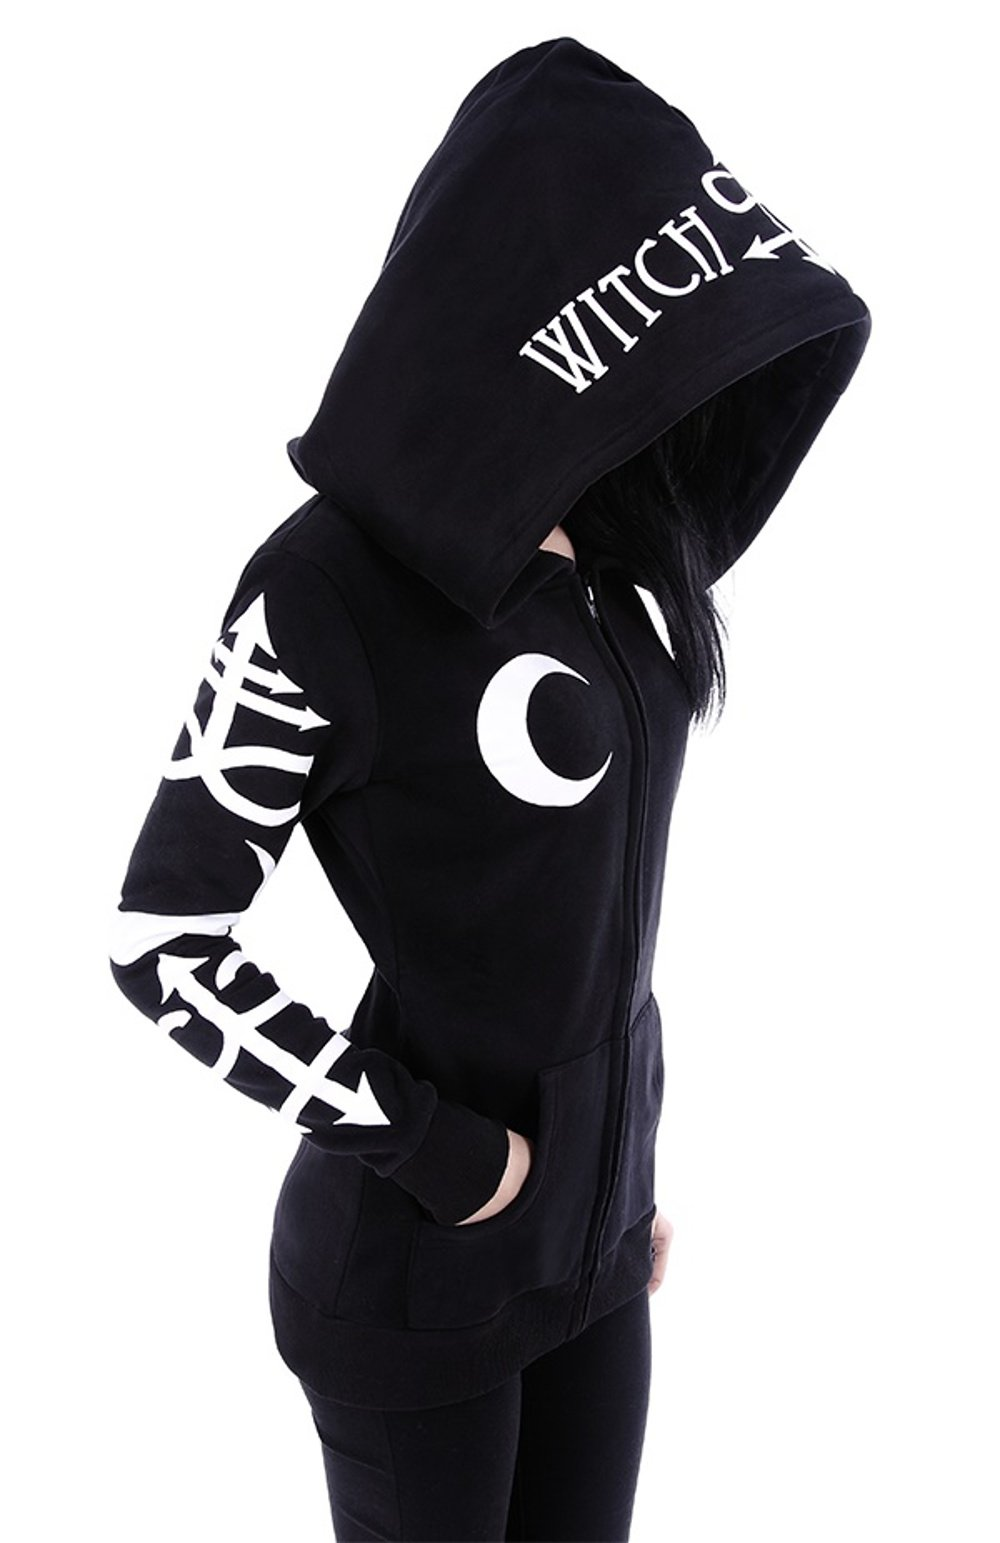 Restyle Witchcraft oversized hood Gothic Alternative Goth black hoodie (L)